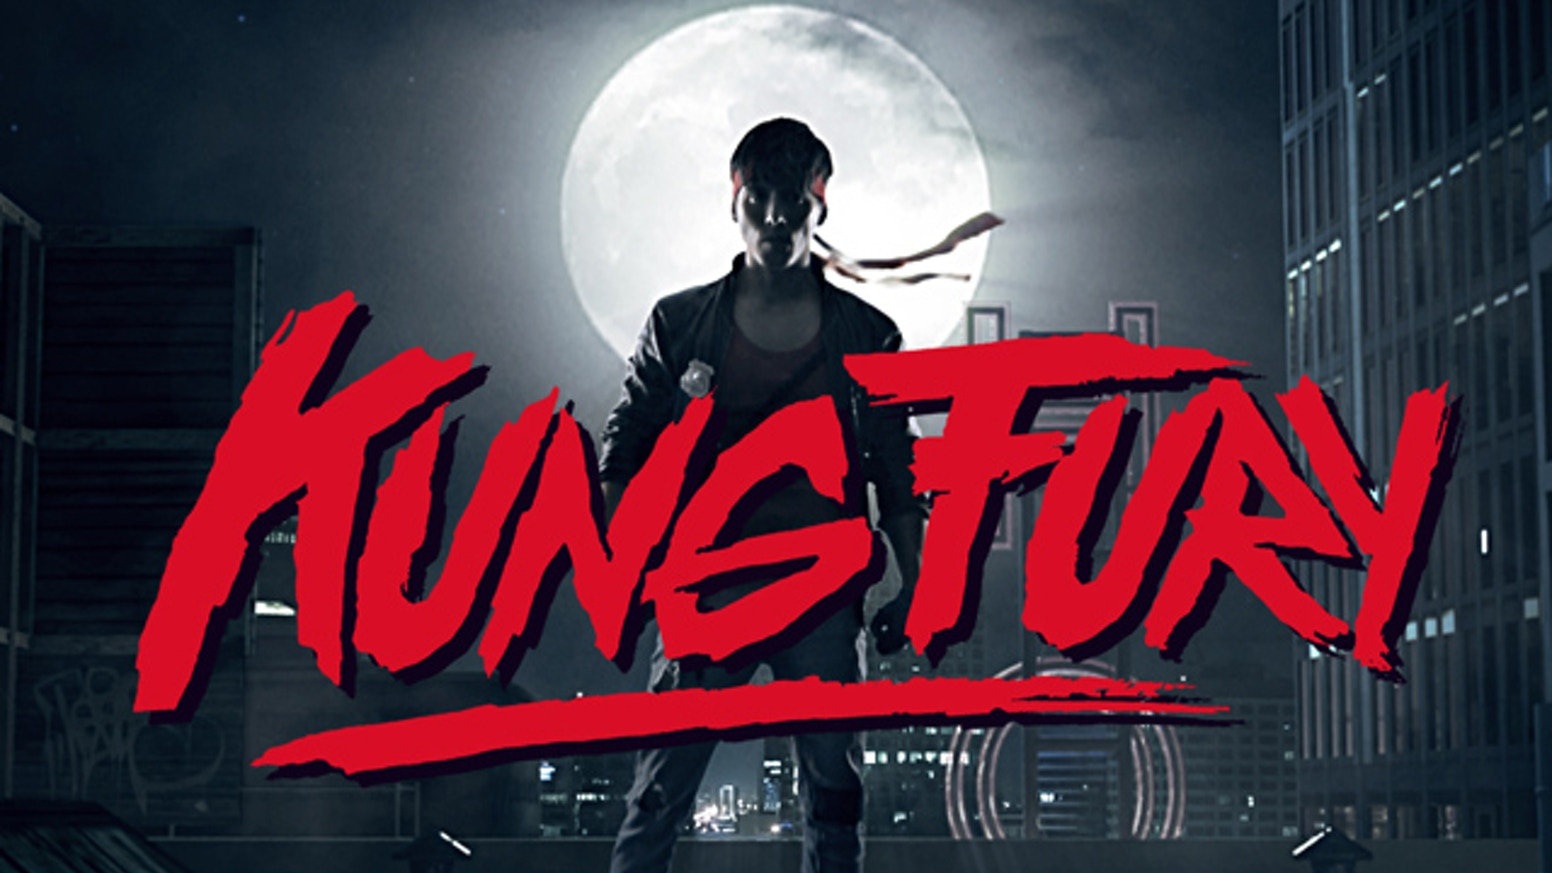 Kung Fury is a visually spectacular action comedy that has its foundation in 80s cop movies. Available now at kungfury.com, YouTube, and iTunes! Also shop at shop.kungfury.com if you like stuff!